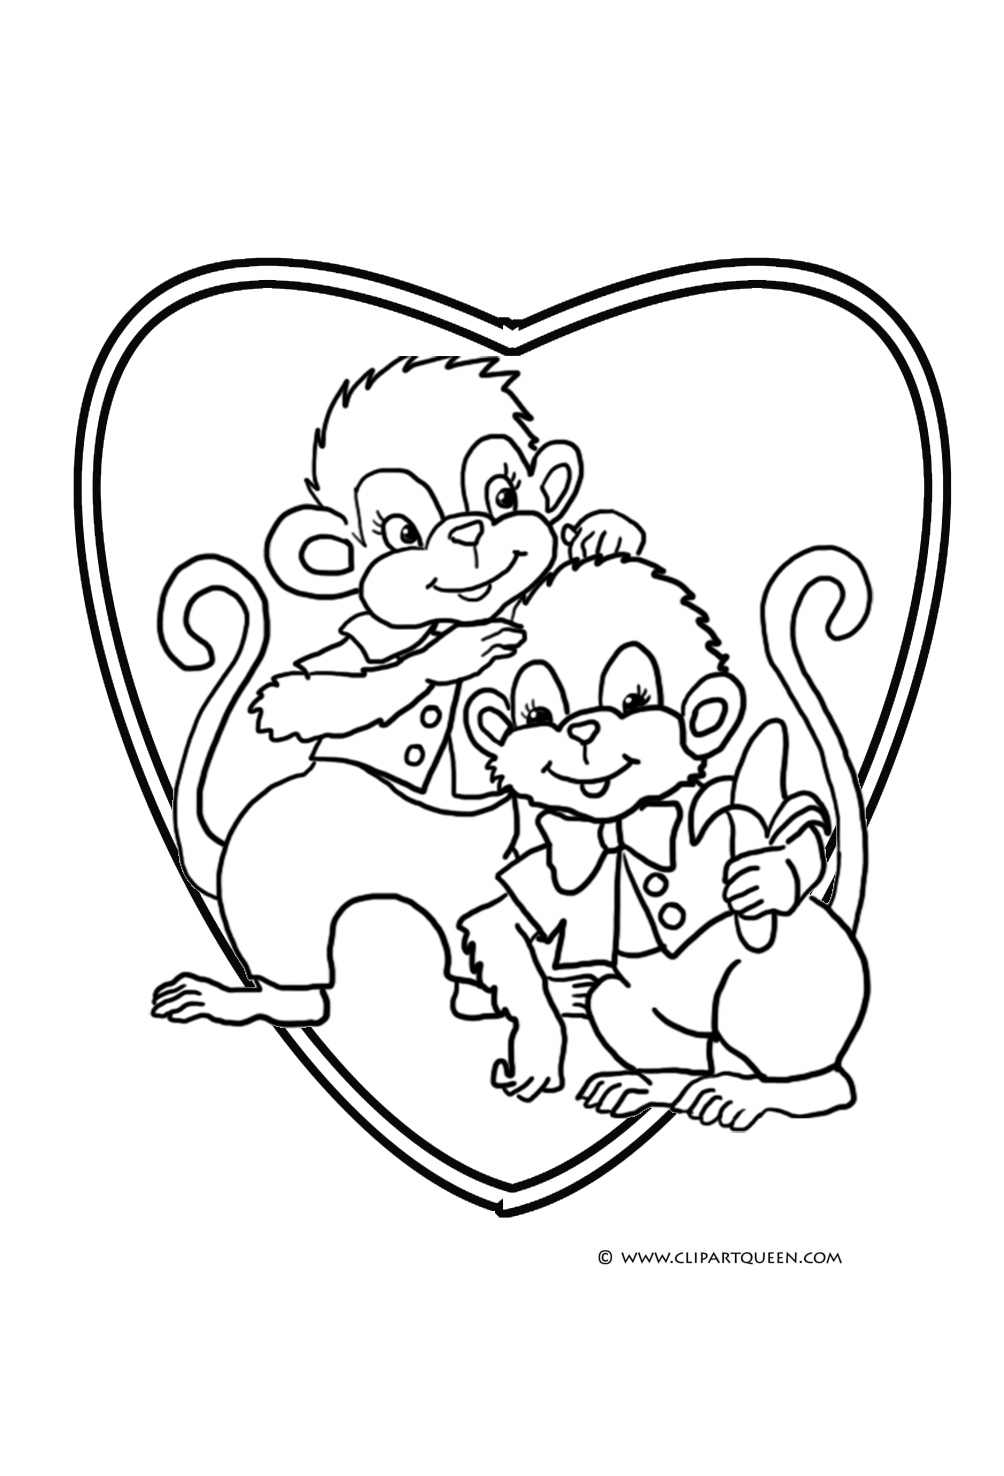 Two Hearts Coloring Pages